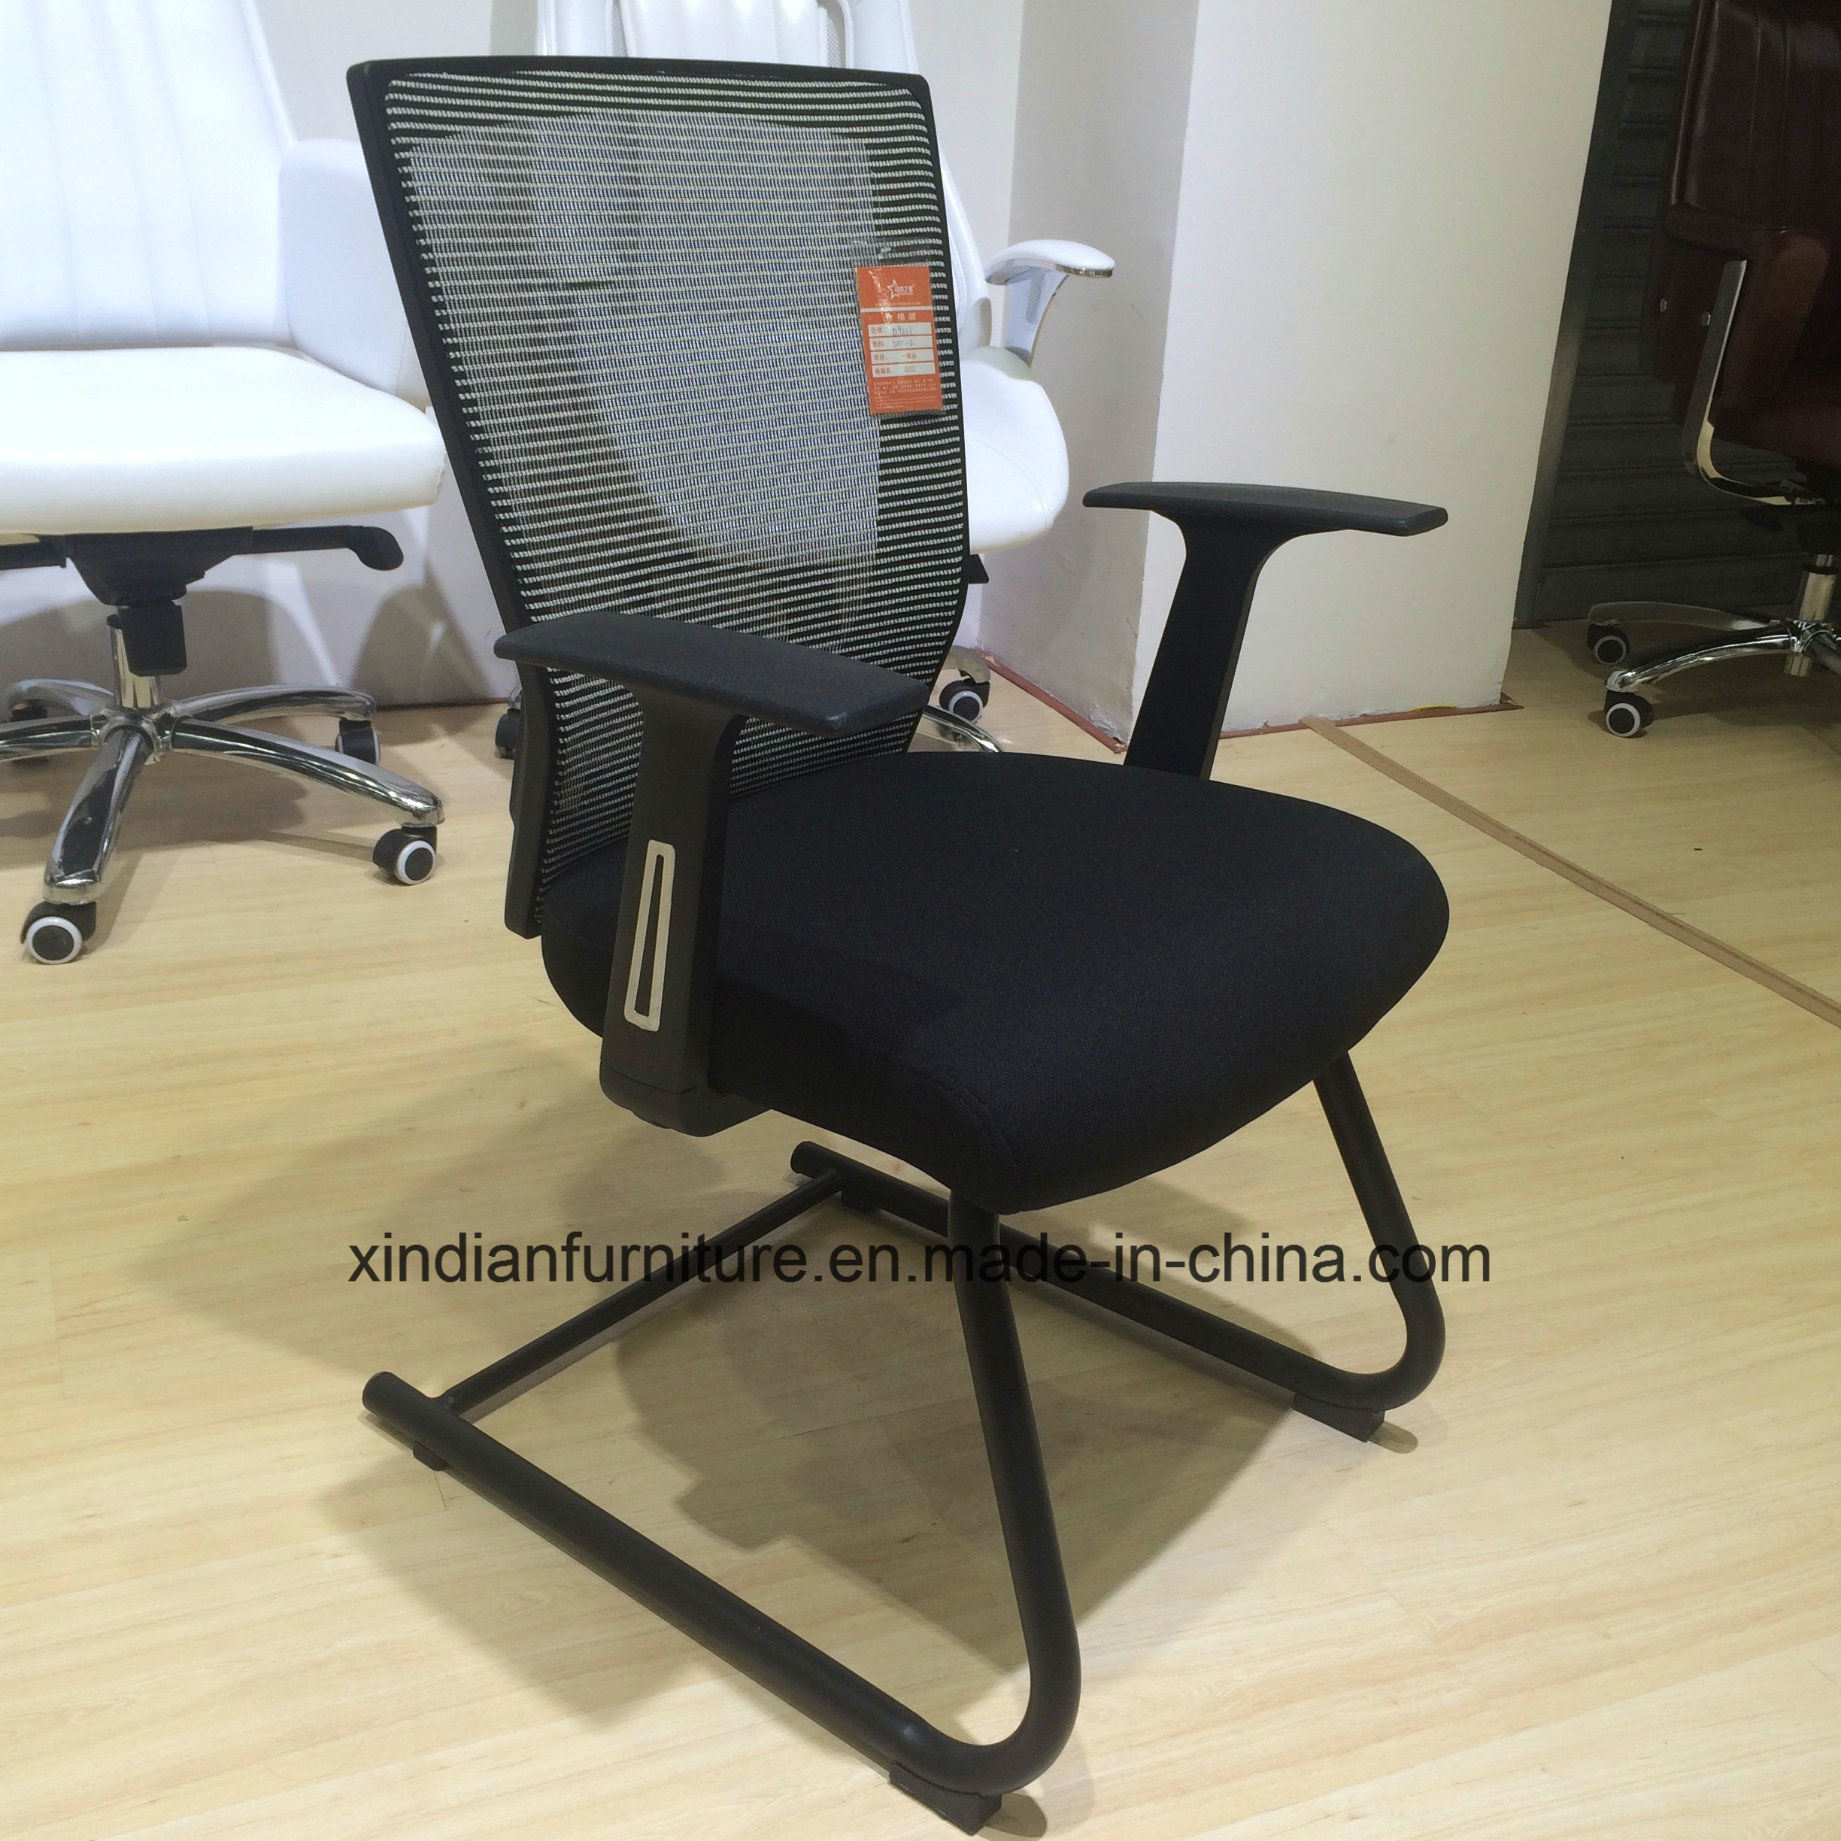 China Fixed Metal Frame Mesh Office Chair With Low Price Modern